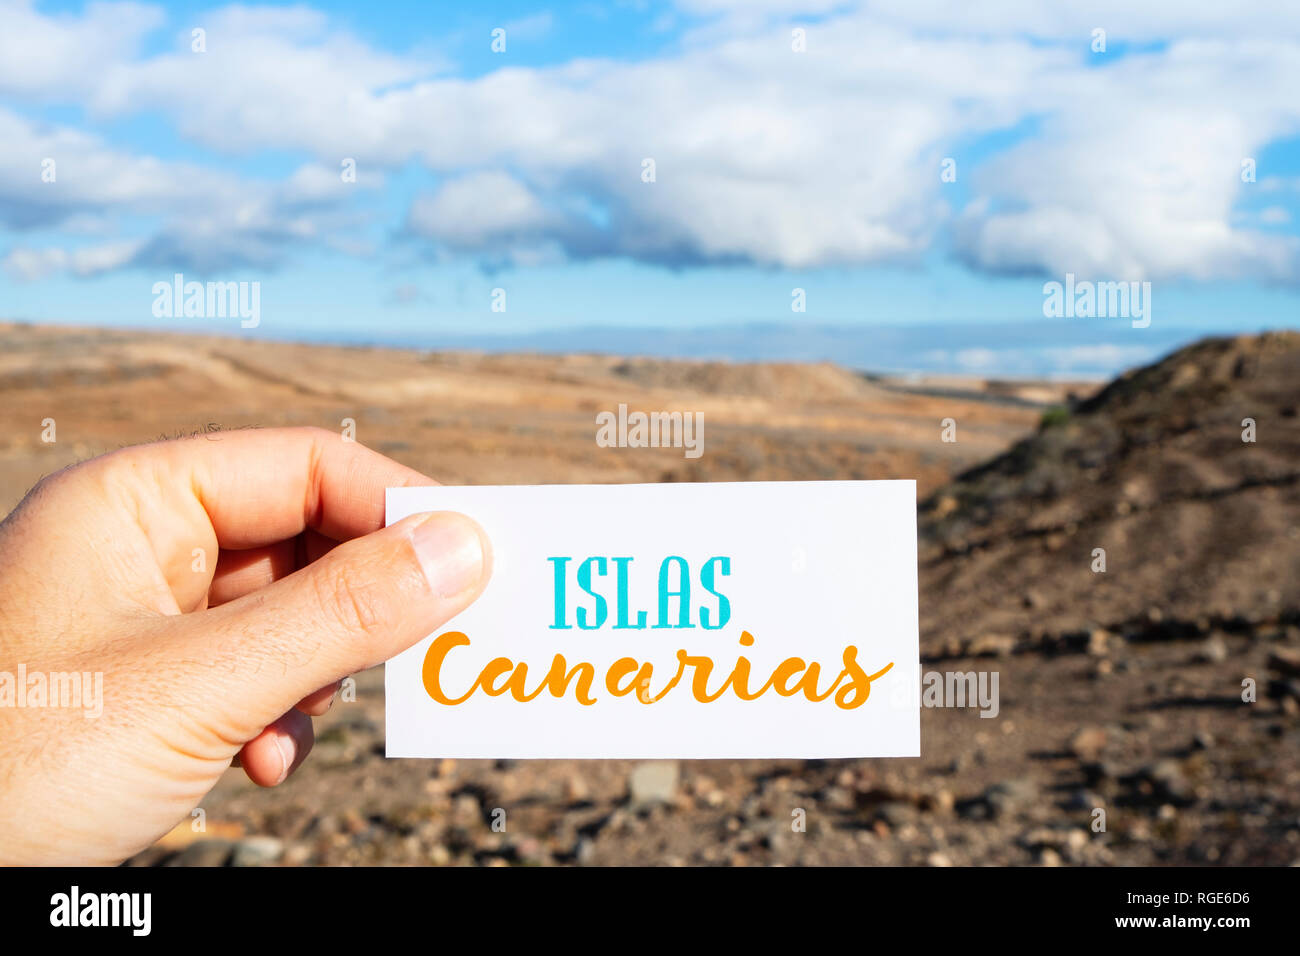 closeup of the hand of a caucasian man holding a signboard with the text Islas Canarias, Canary Islands written in Spanish, in front of a dry landscap - Stock Image